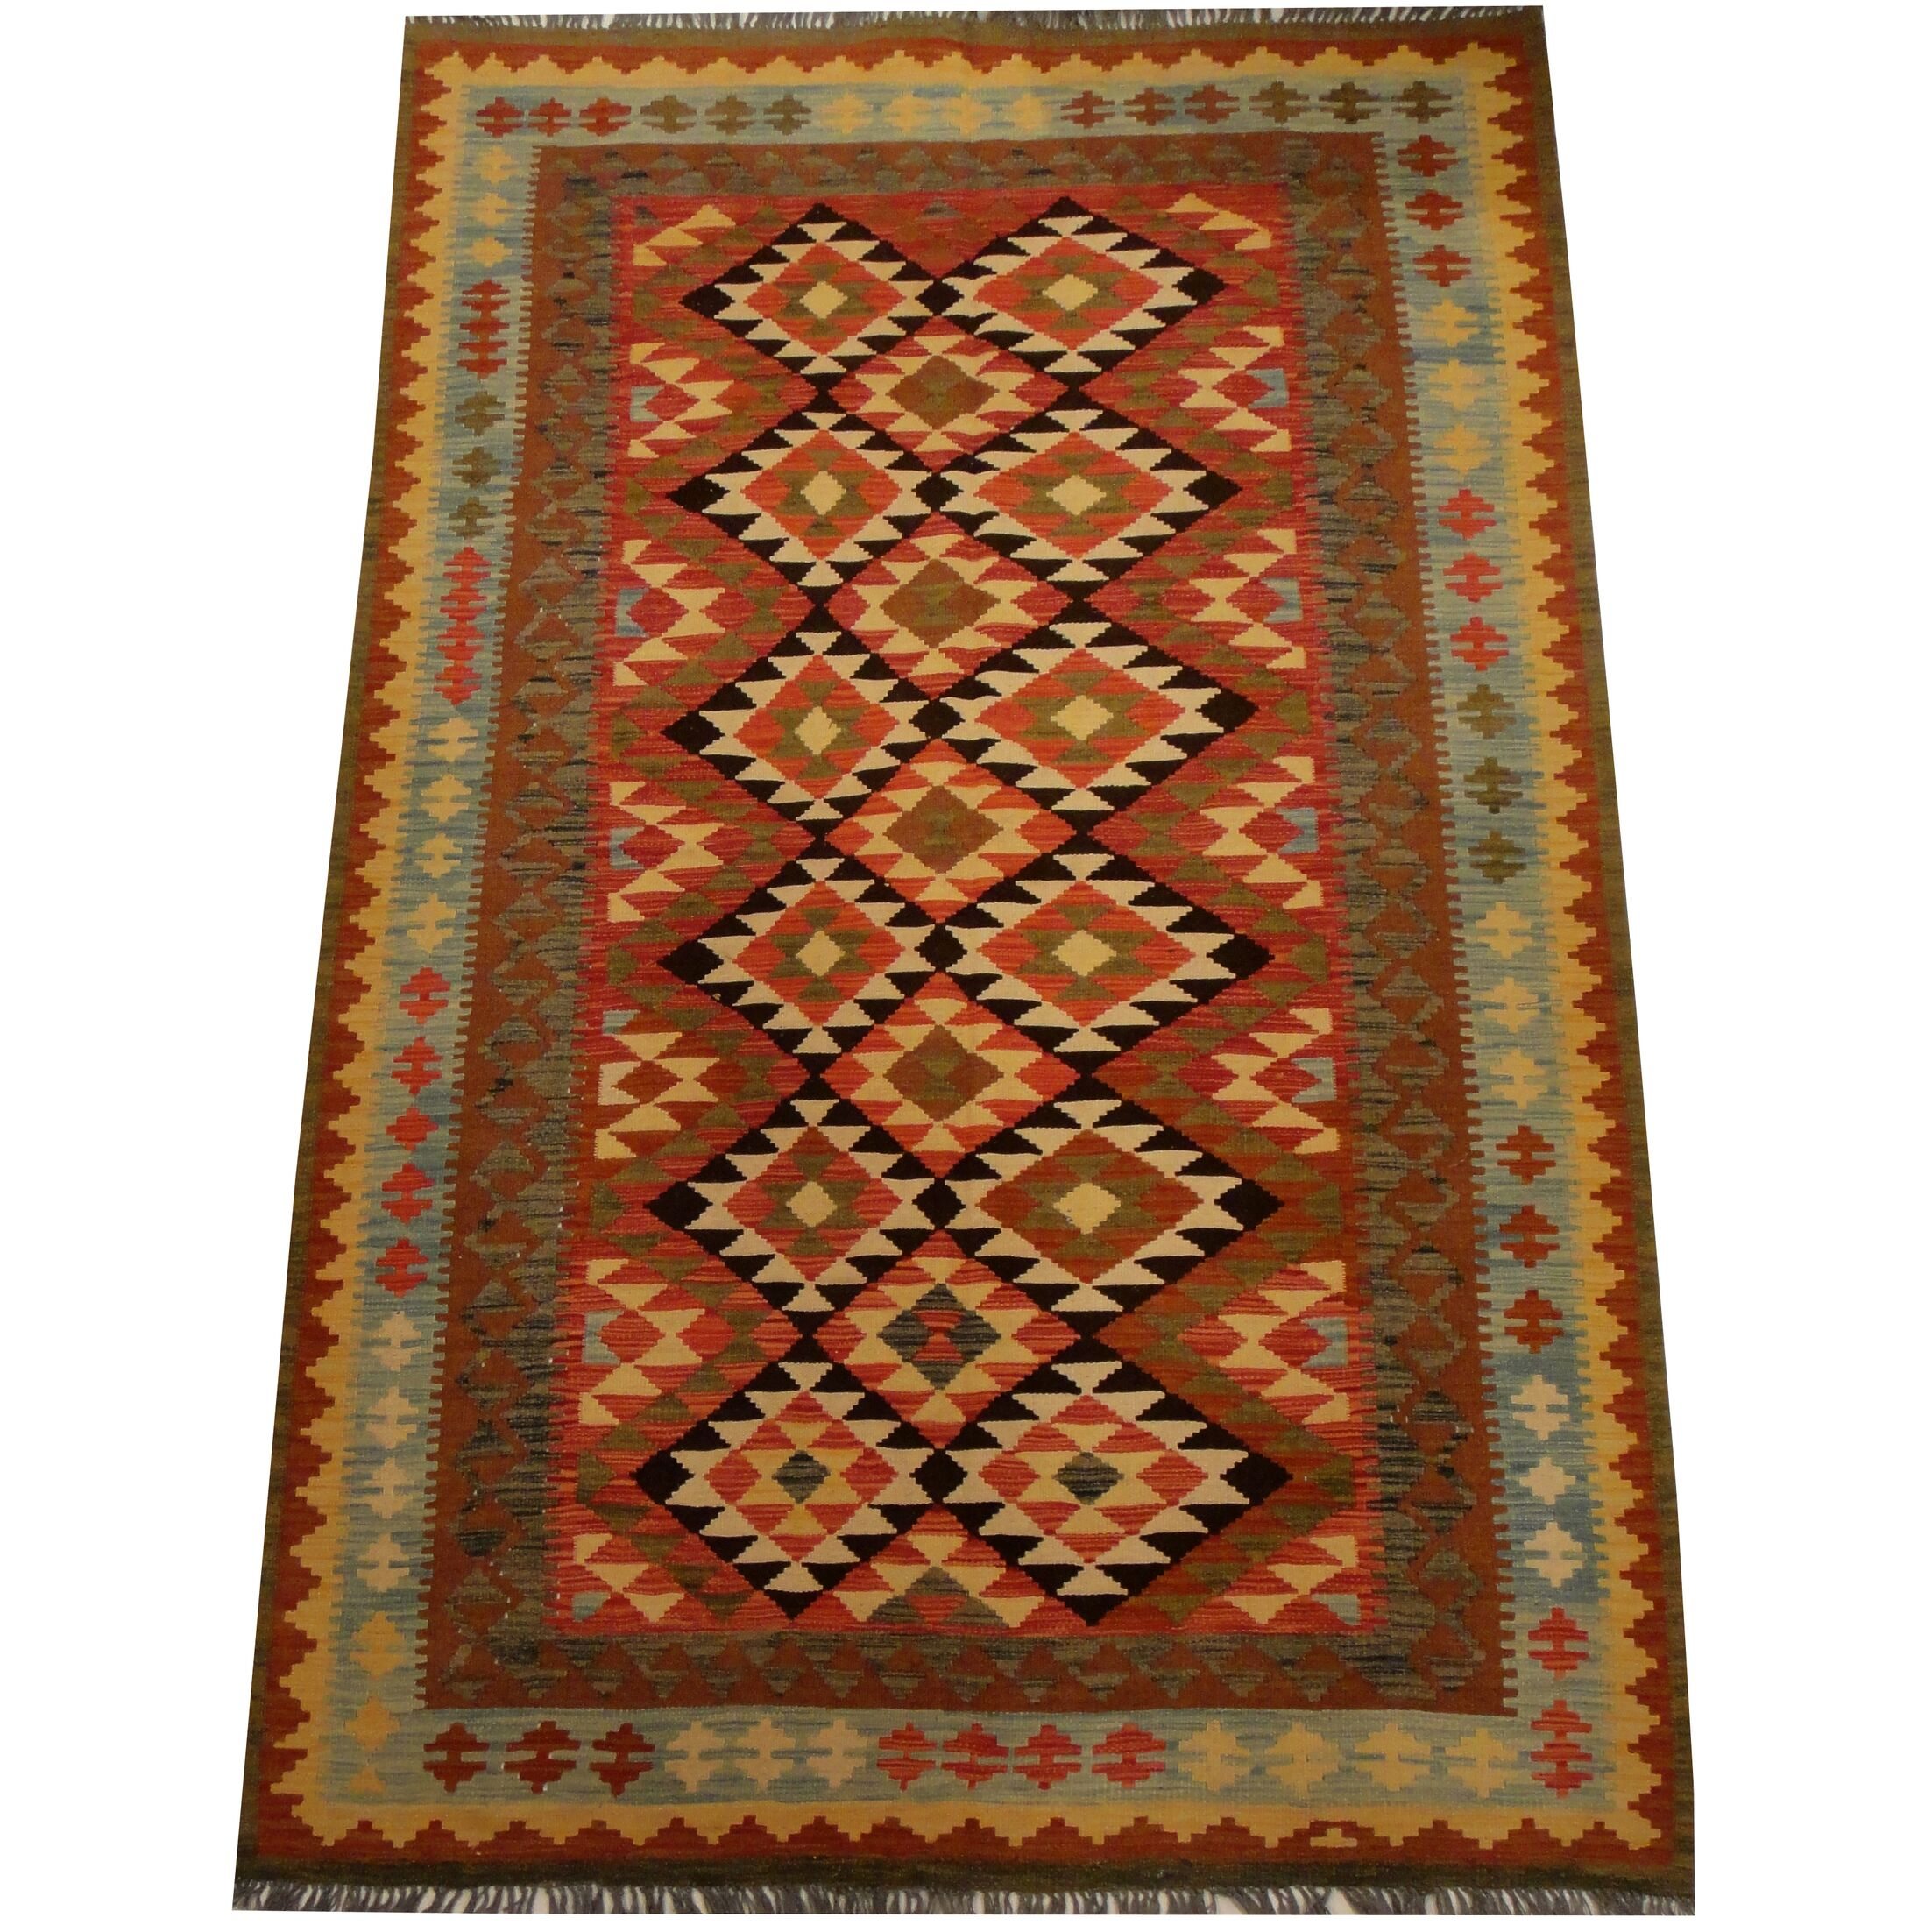 Kilim Hand-Woven Red/Light Blue Area Rug